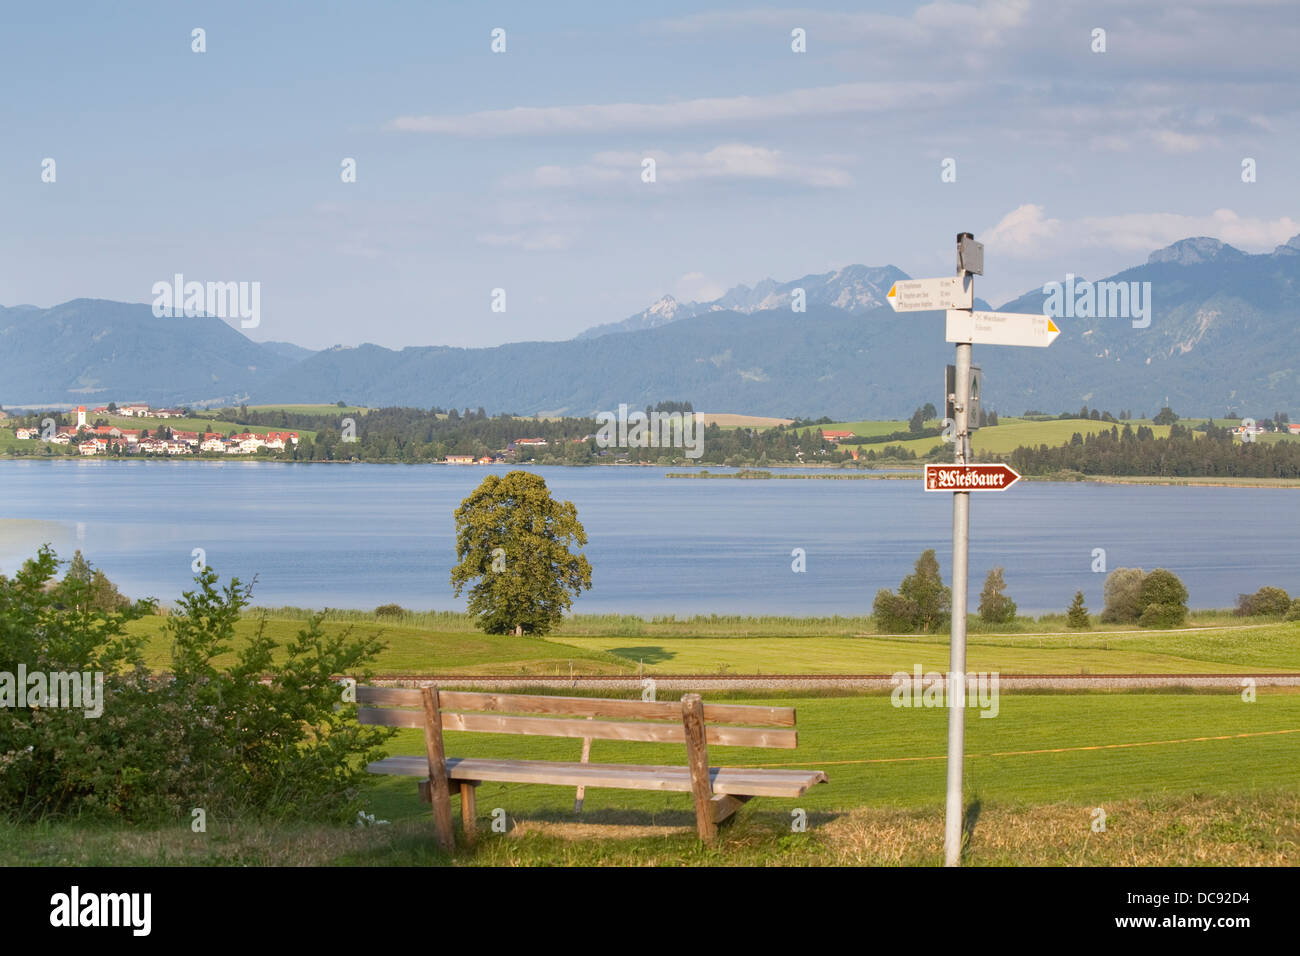 Europe, Germany, Bavaria, Ostallgäu, Hopferau, view of the Hopfensee with Hopfen am See and  the Alps in the background Stock Photo